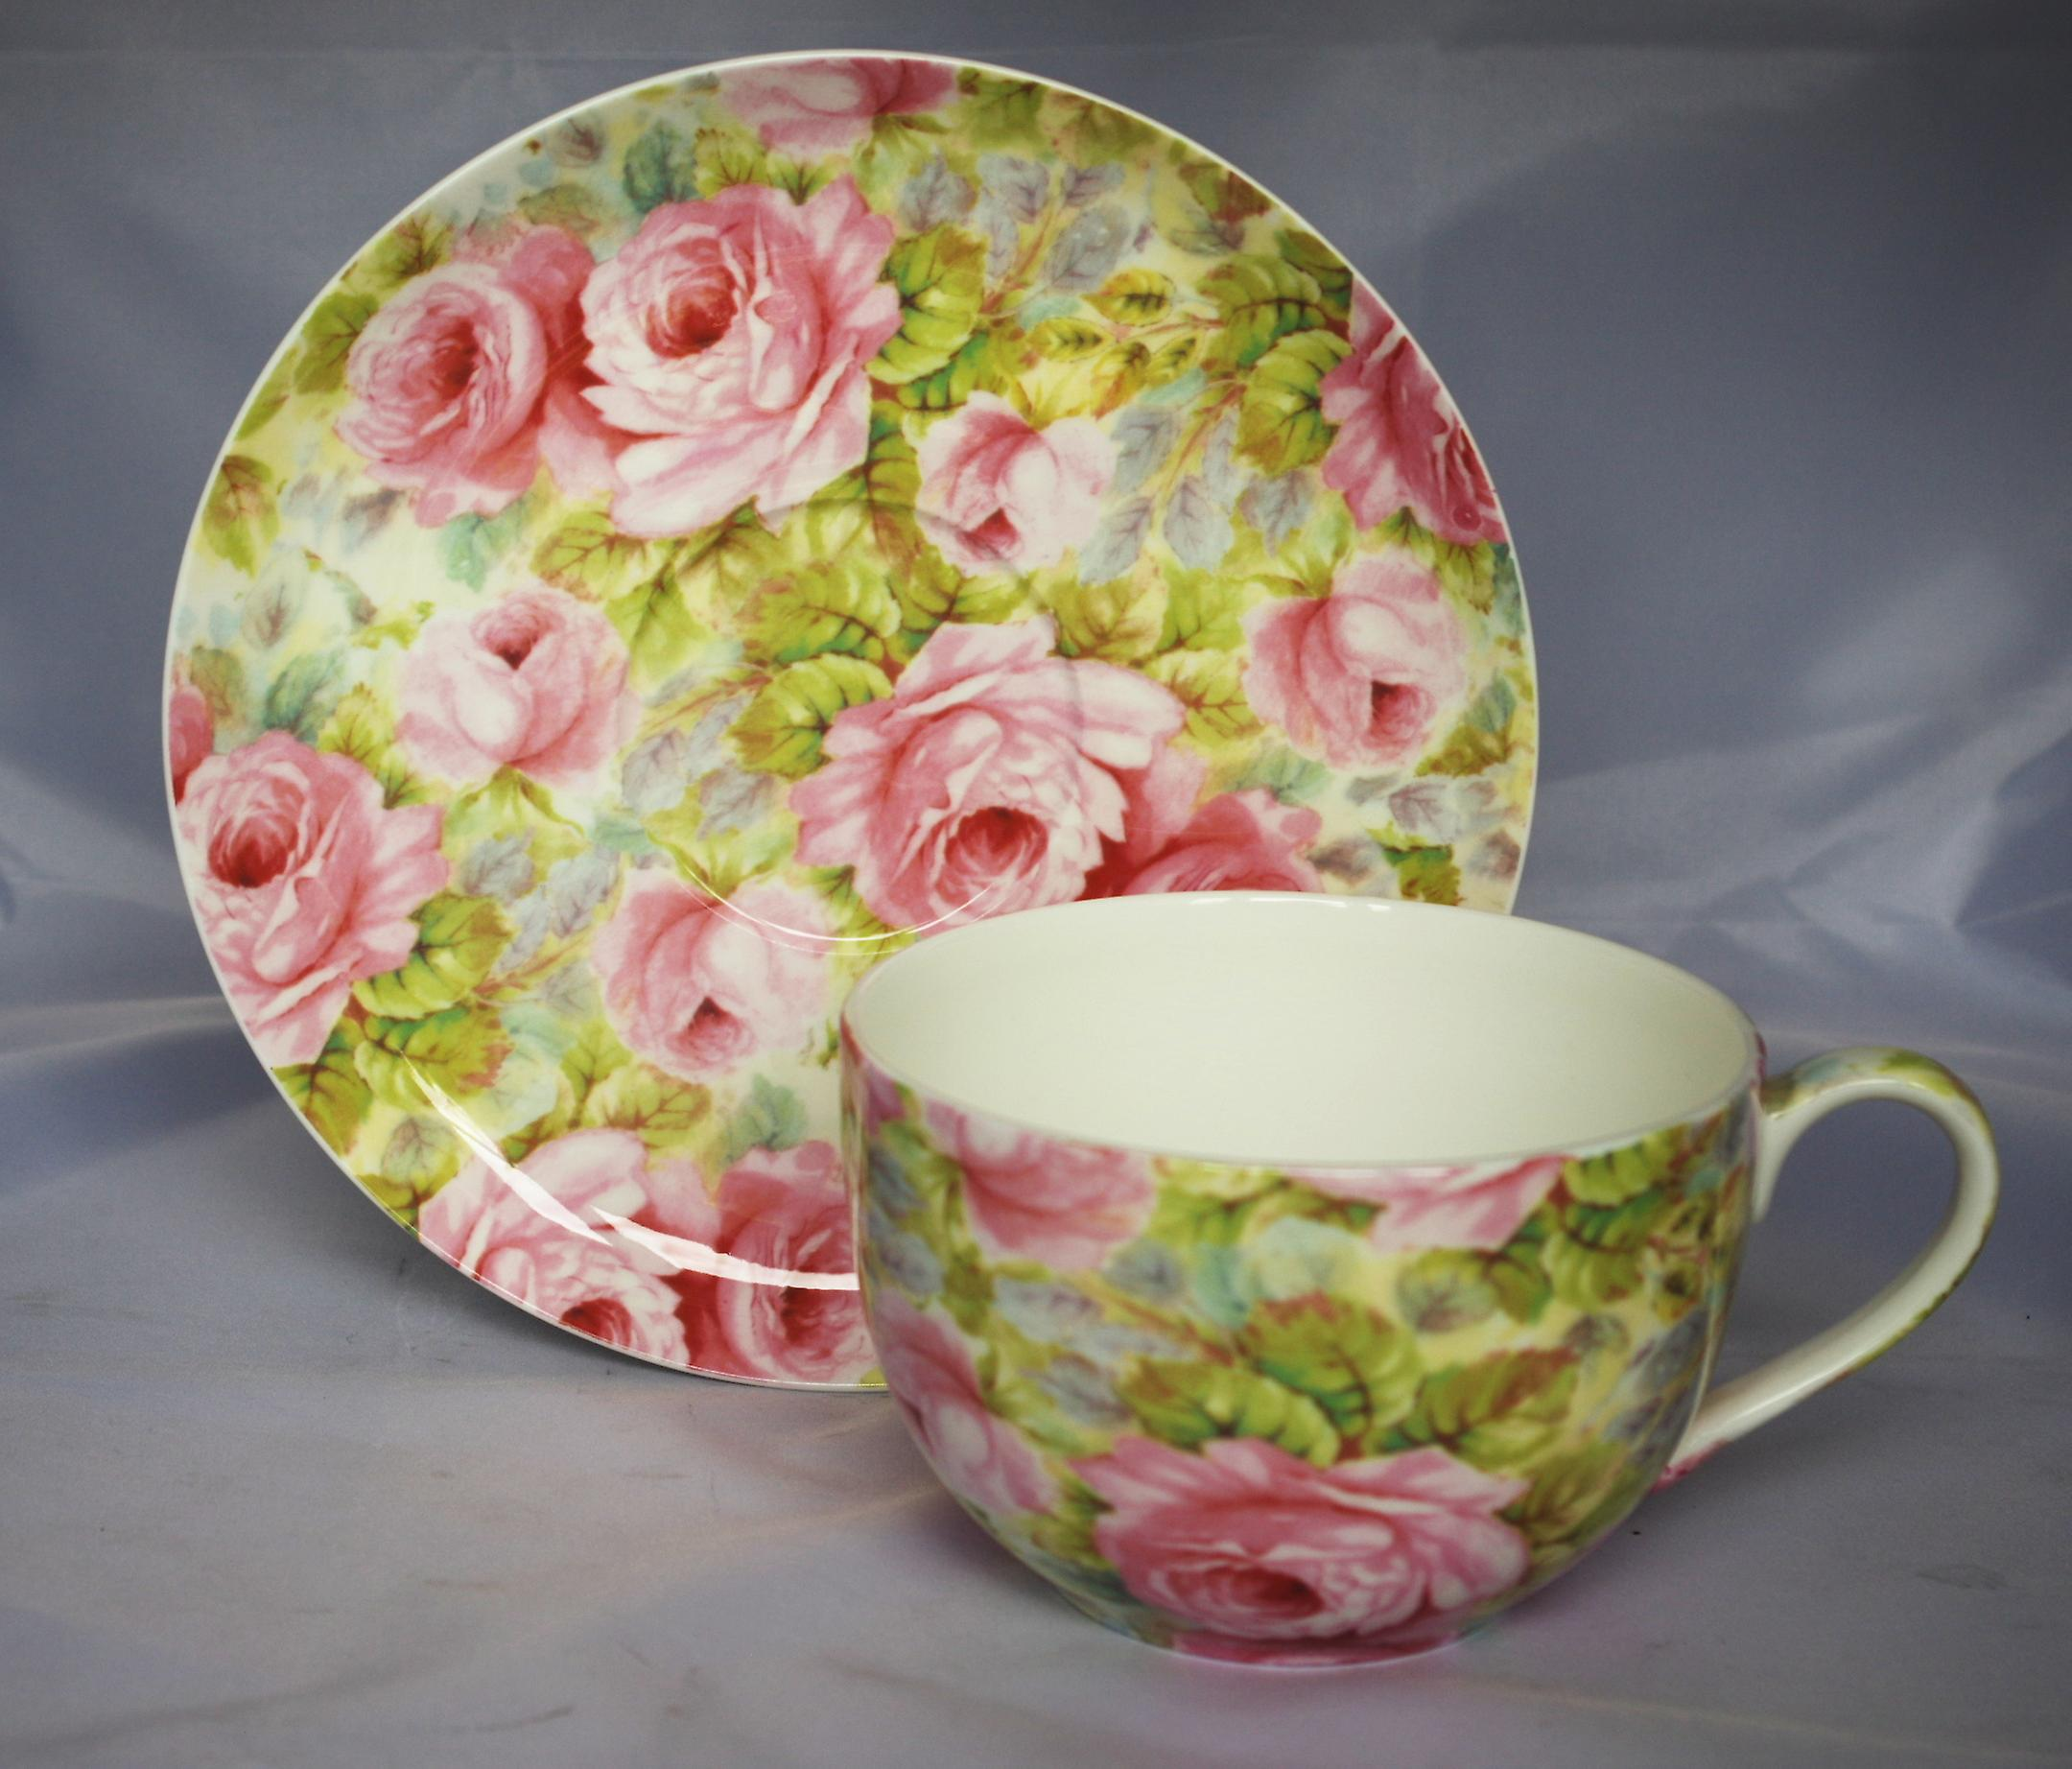 English Bone China Large Cup & Saucer Misty Rose